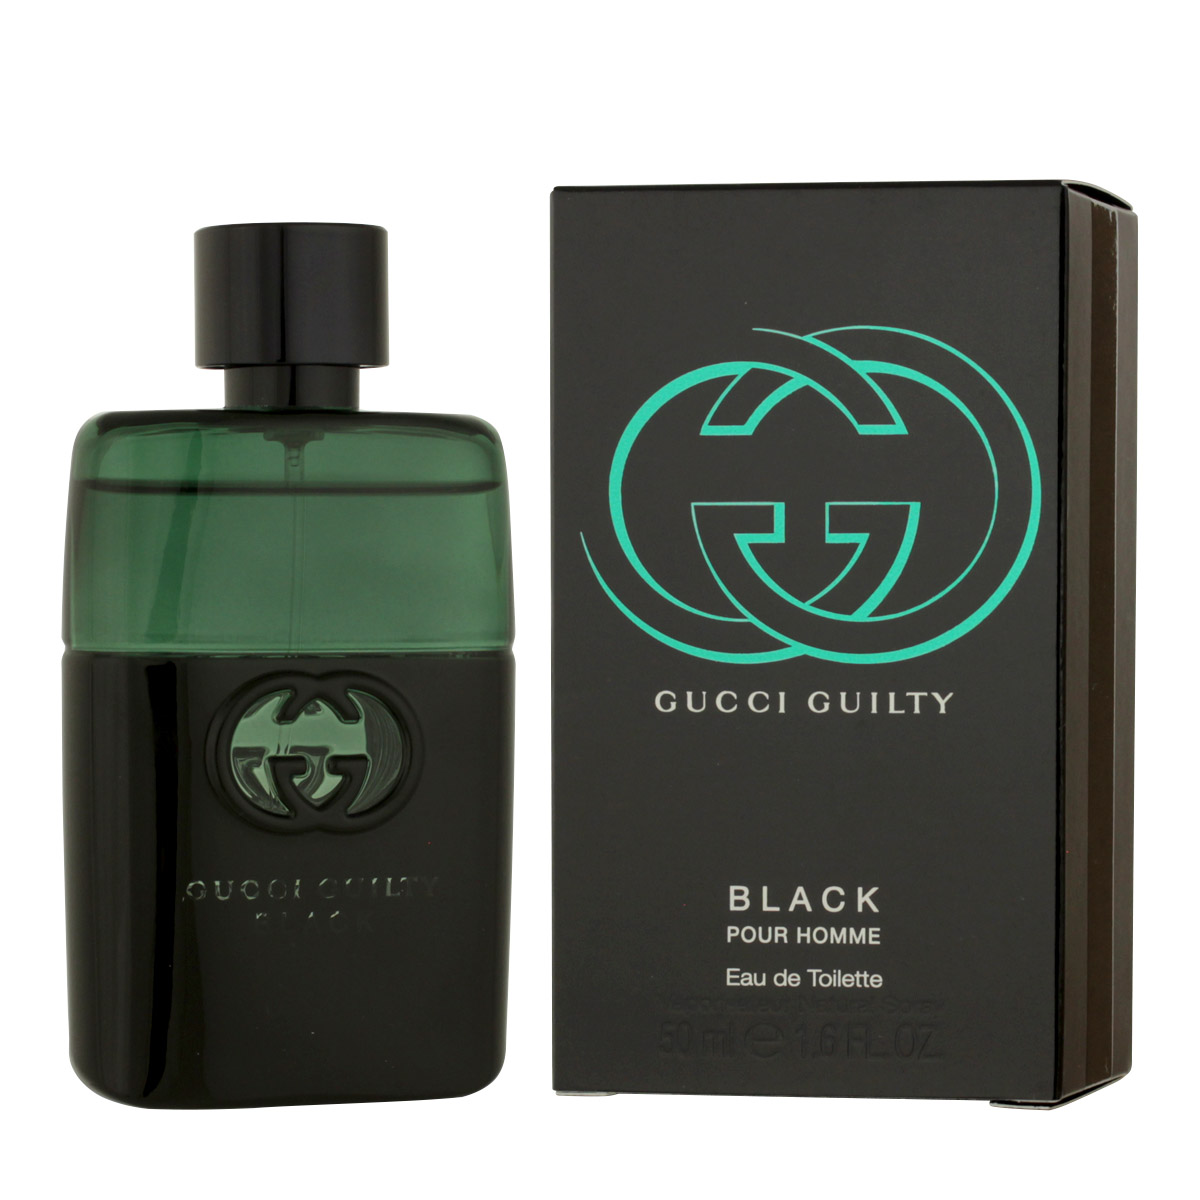 Gucci Guilty Black Pour Homme EDT 50 ml M